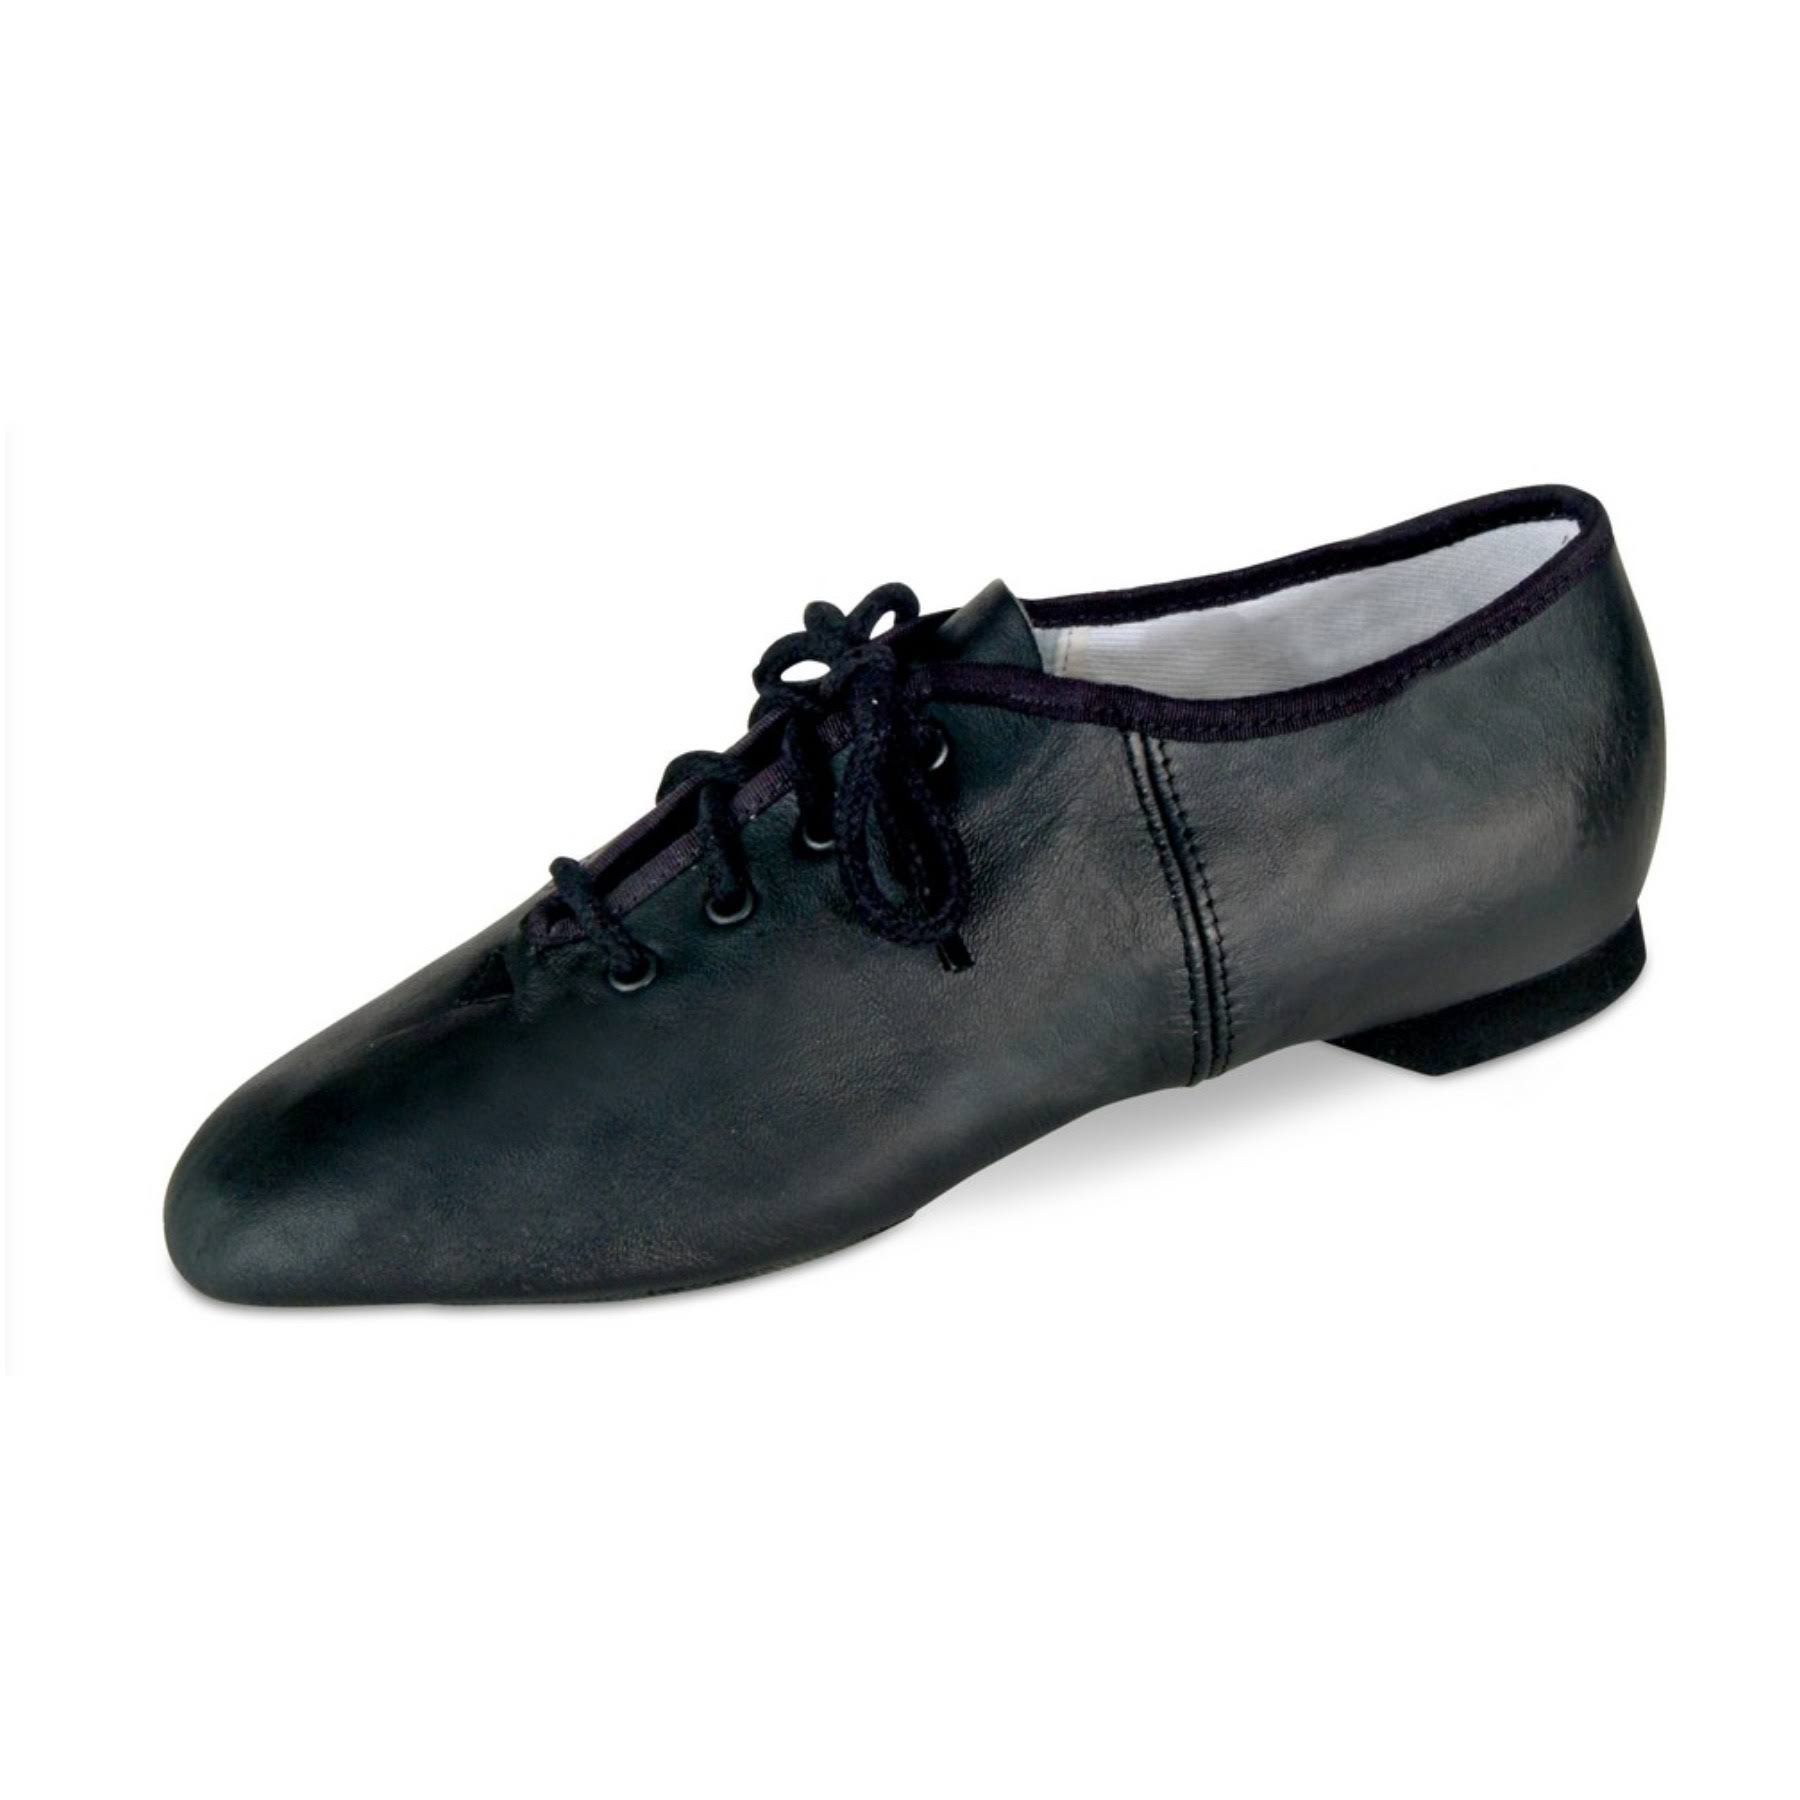 Danshuz Adult Black Soft Leather Upper Split Sole Jazz Shoes 11 Womens